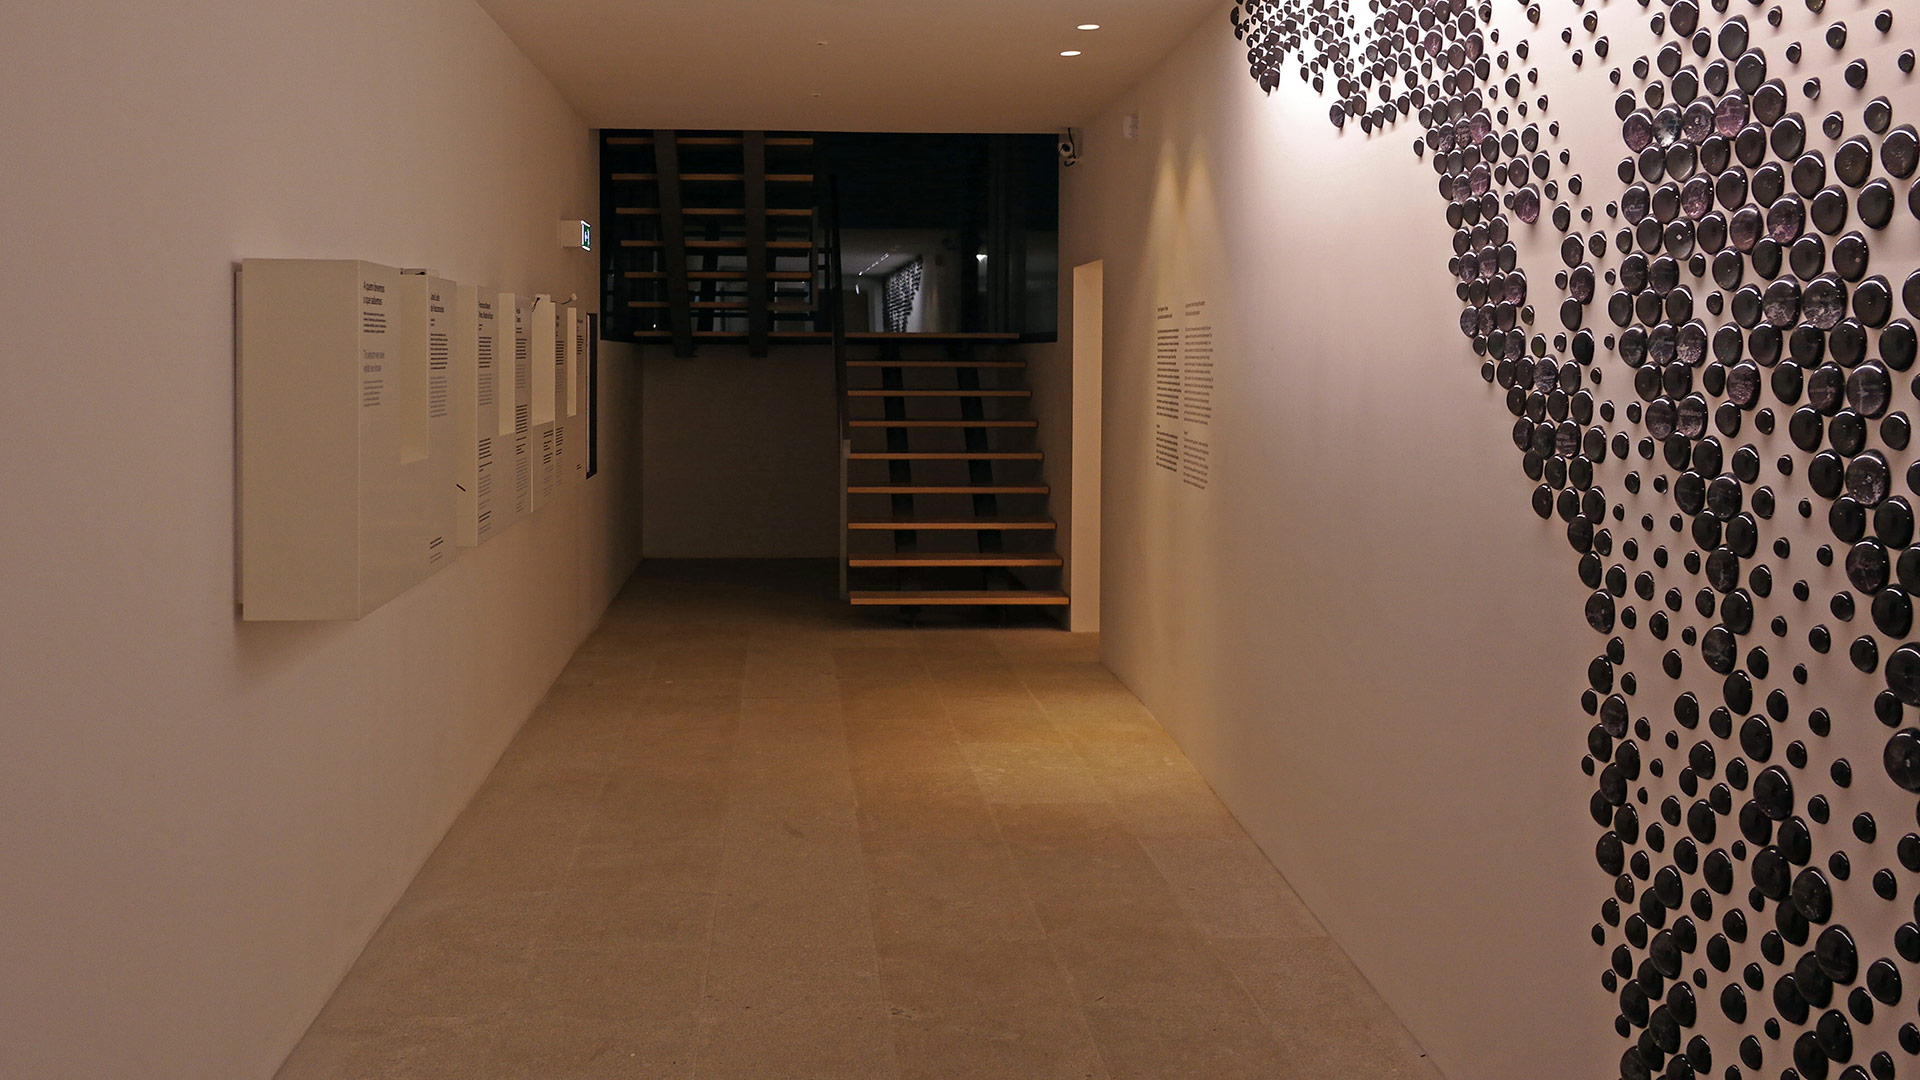 Interior of the Sephardic Culture Interpretation Centre of North-East Trás-os-Montes, Bragança / Bragança / Câmara Municipal de Bragança